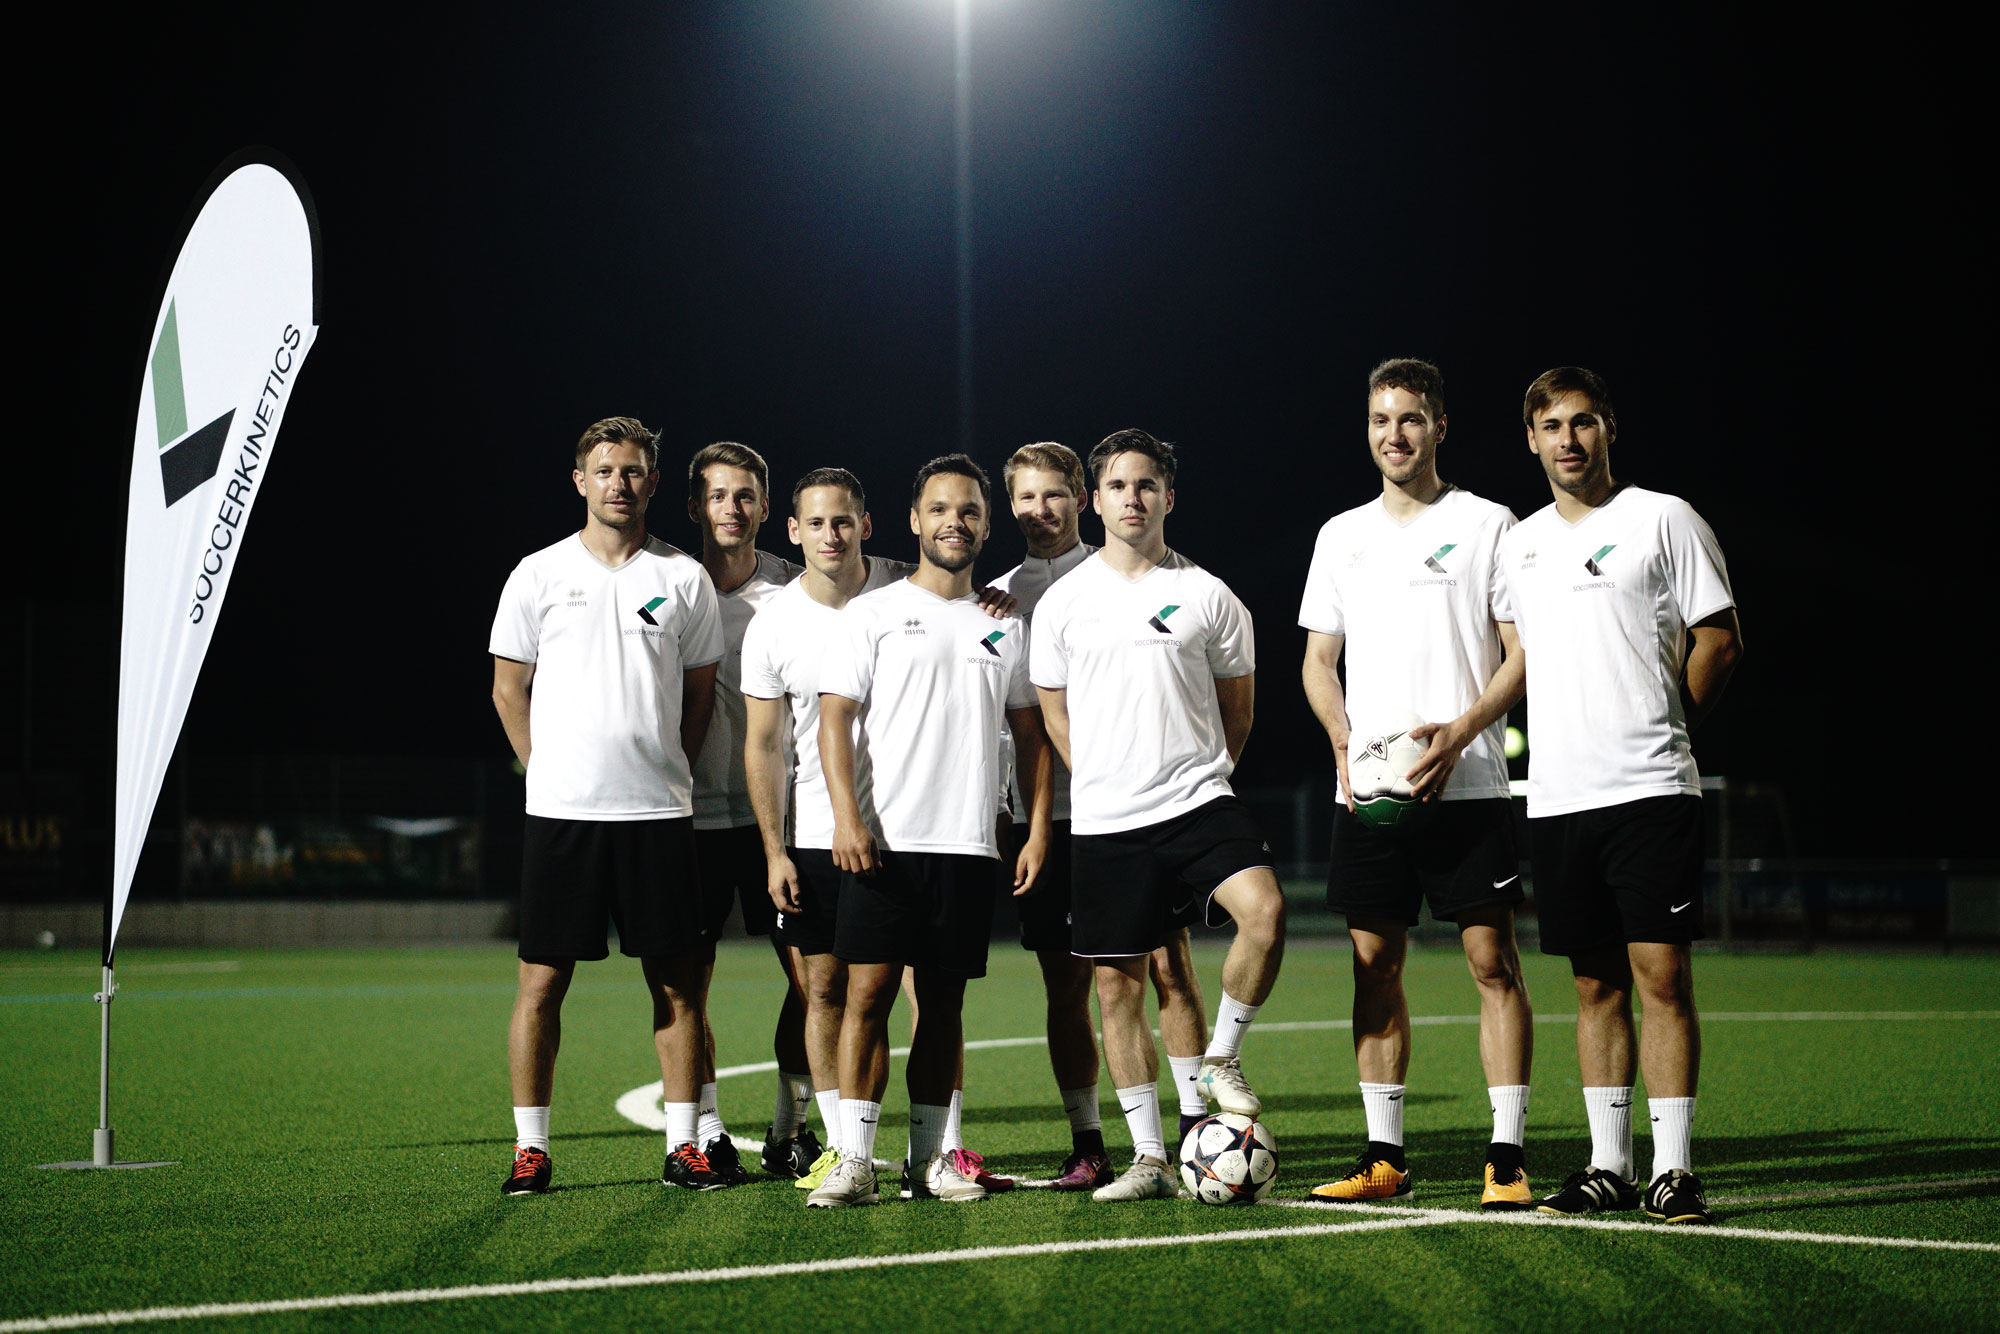 Soccerkinetics Team